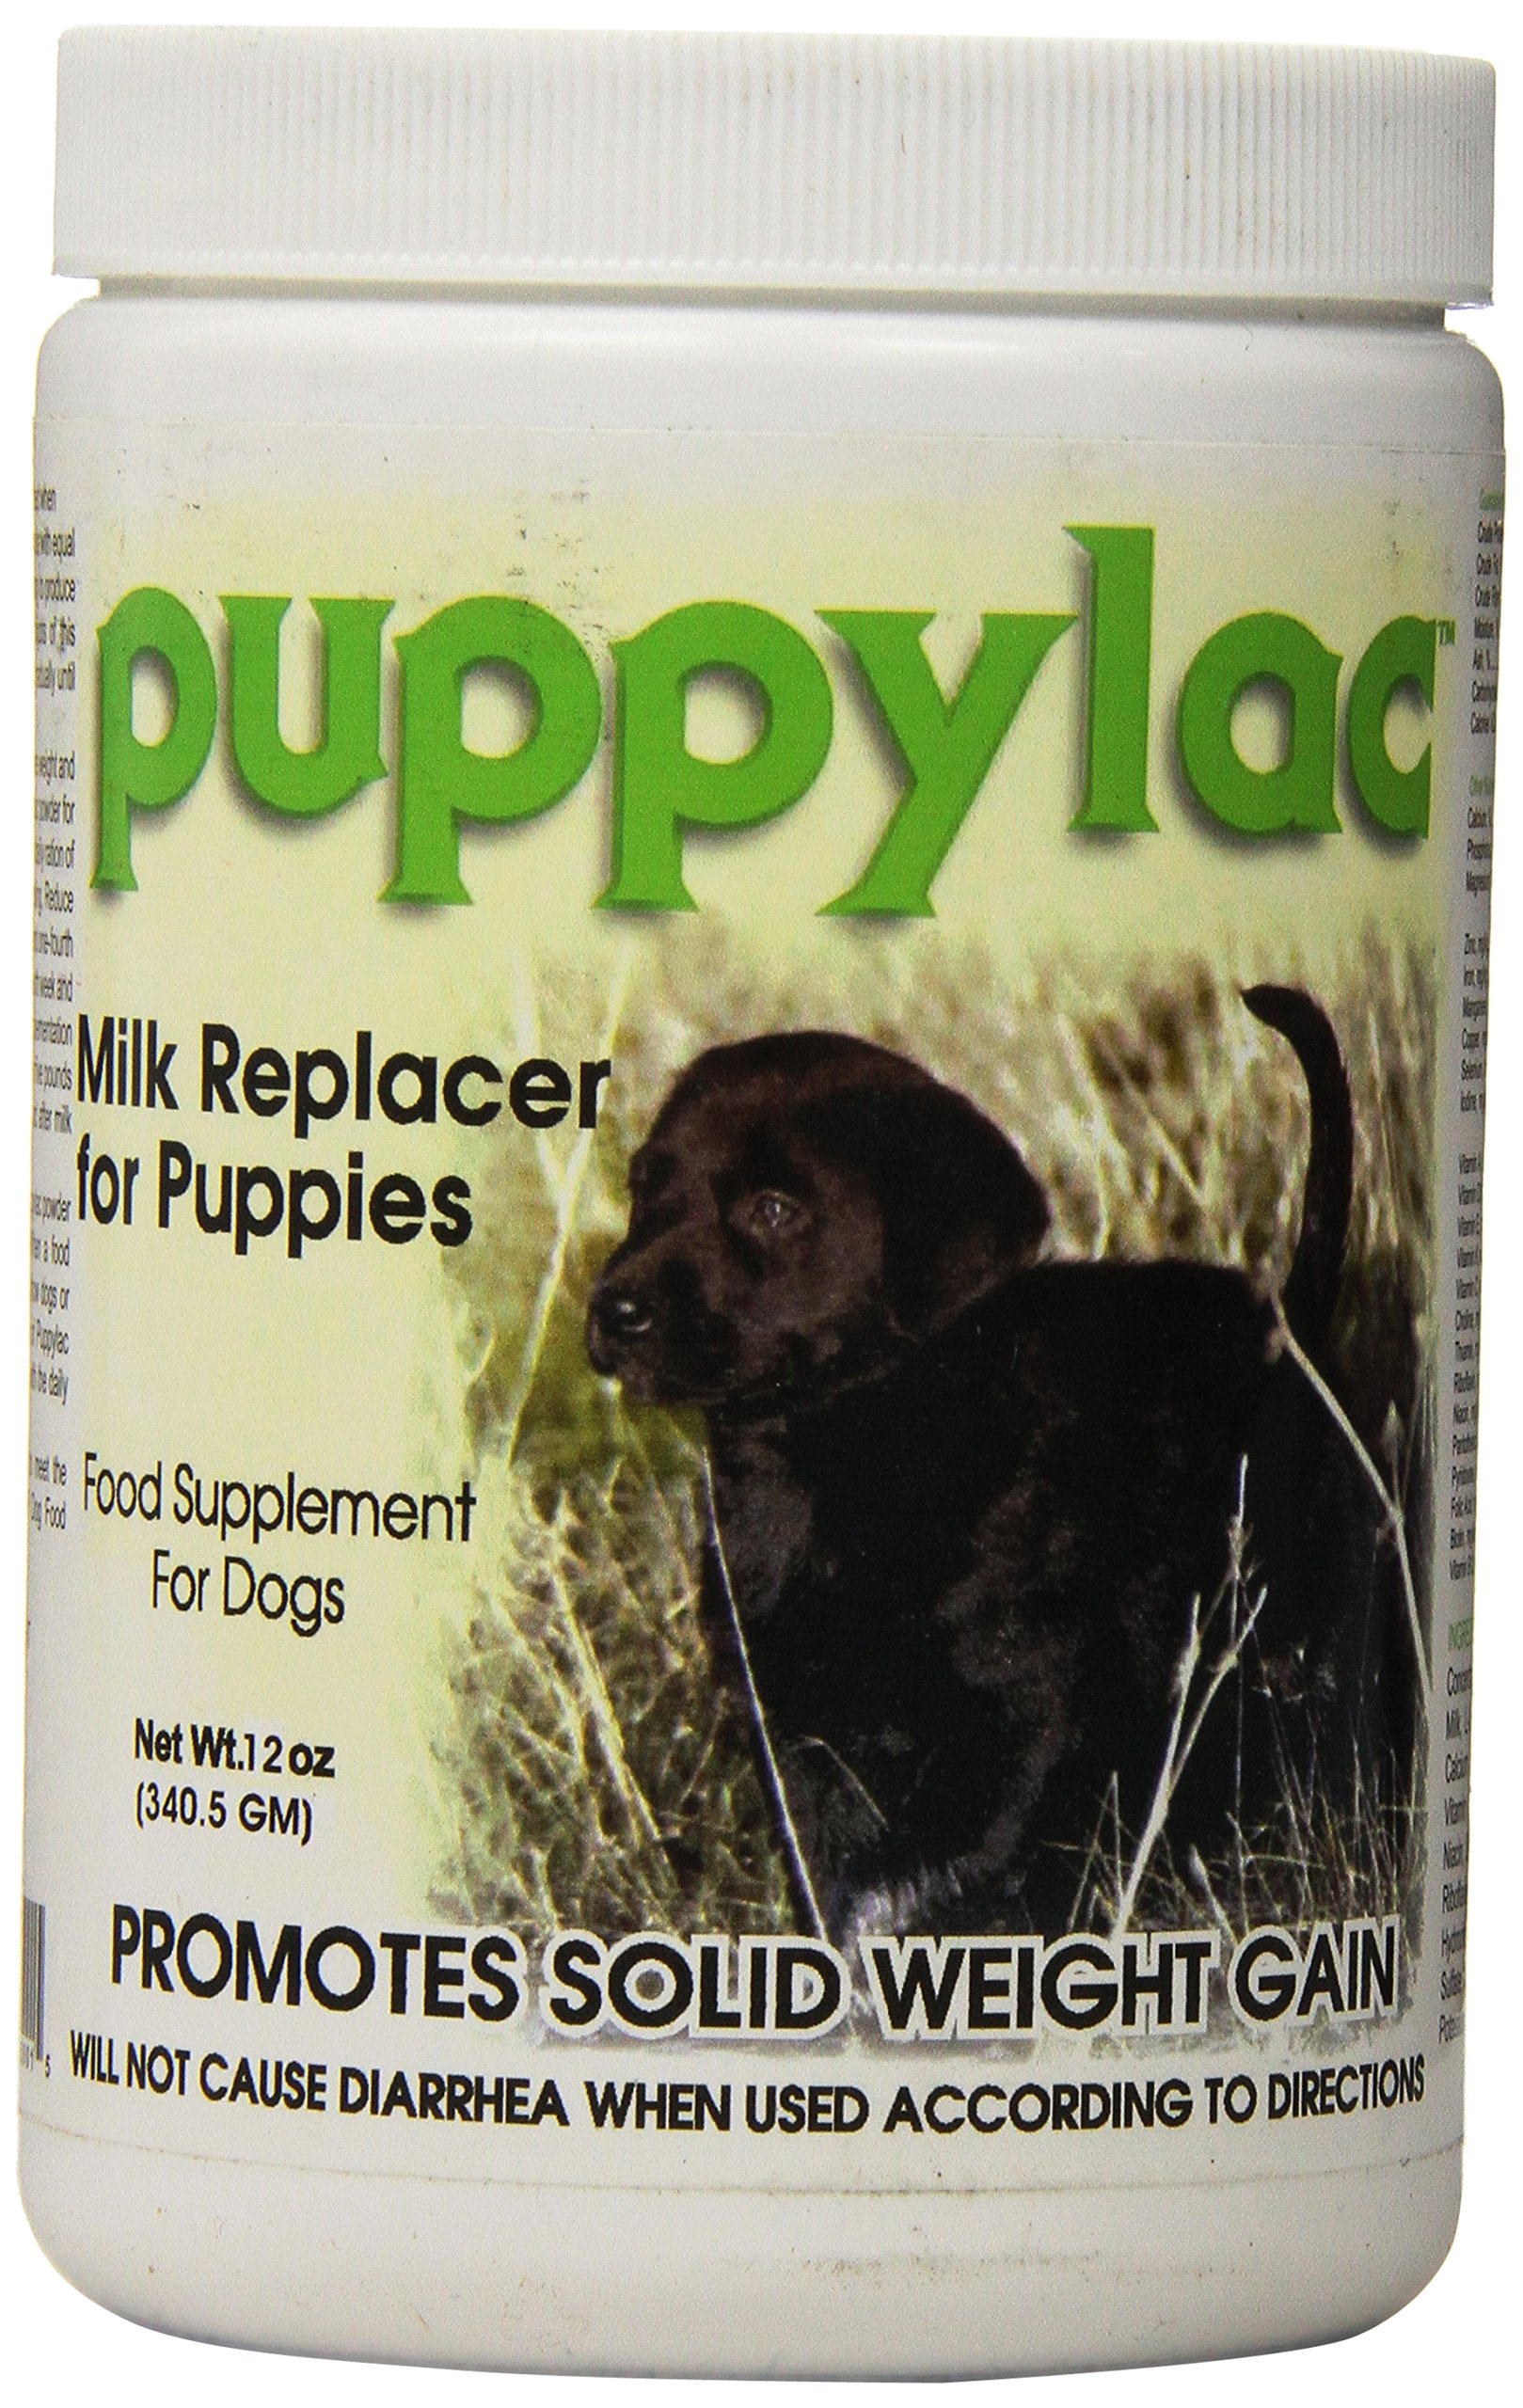 Kenic Puppylac Milk Replacer Puppies, 12-Ounce by Kenic